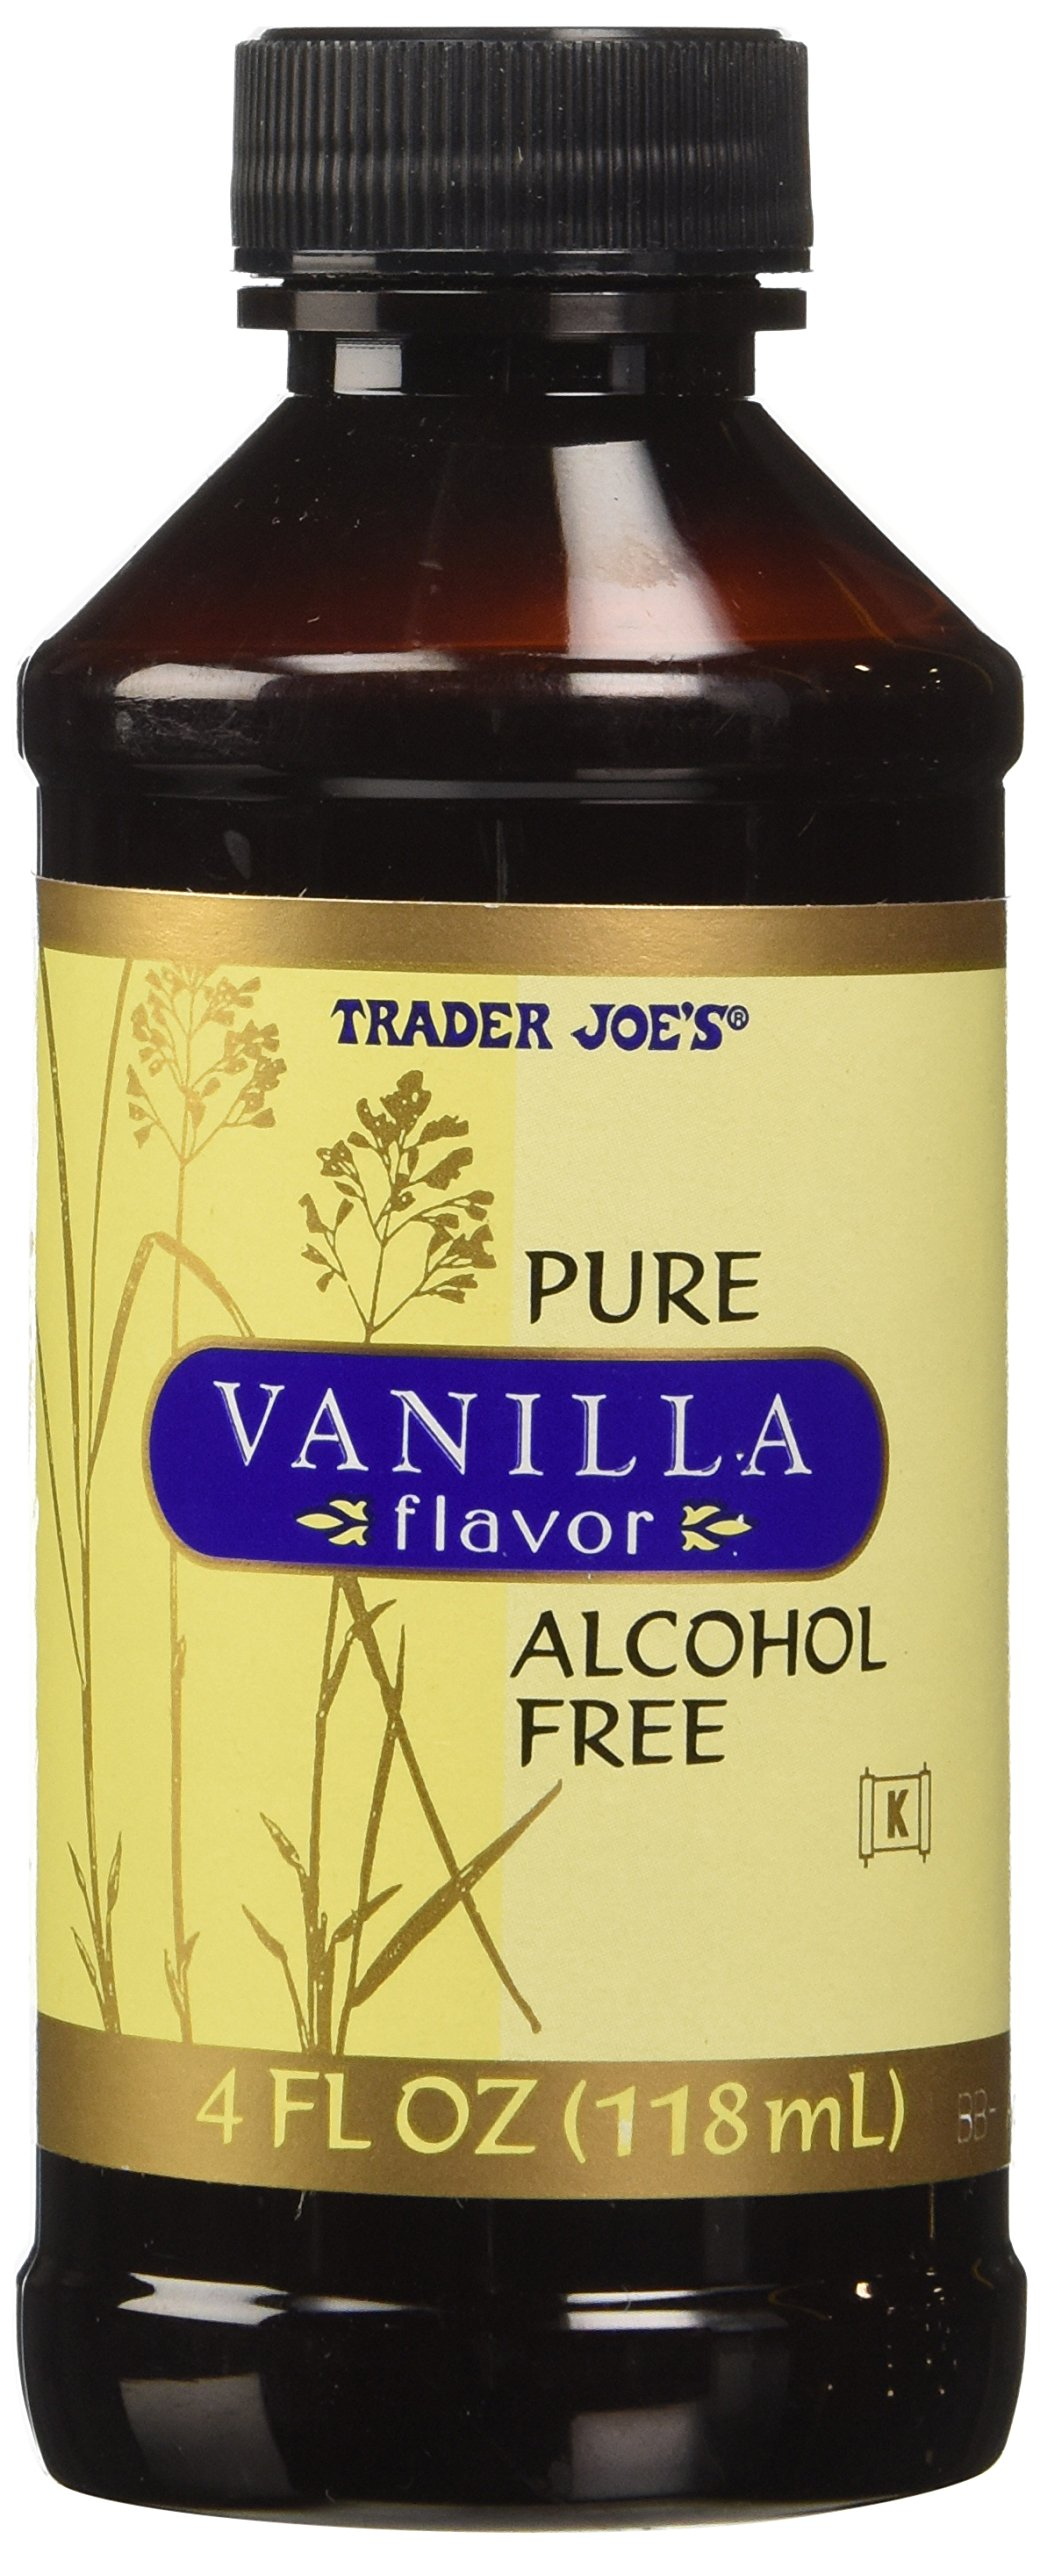 Trader Joe's Pure Vanilla Flavor Alcohol Free, 4 fl oz by Trader Joe's